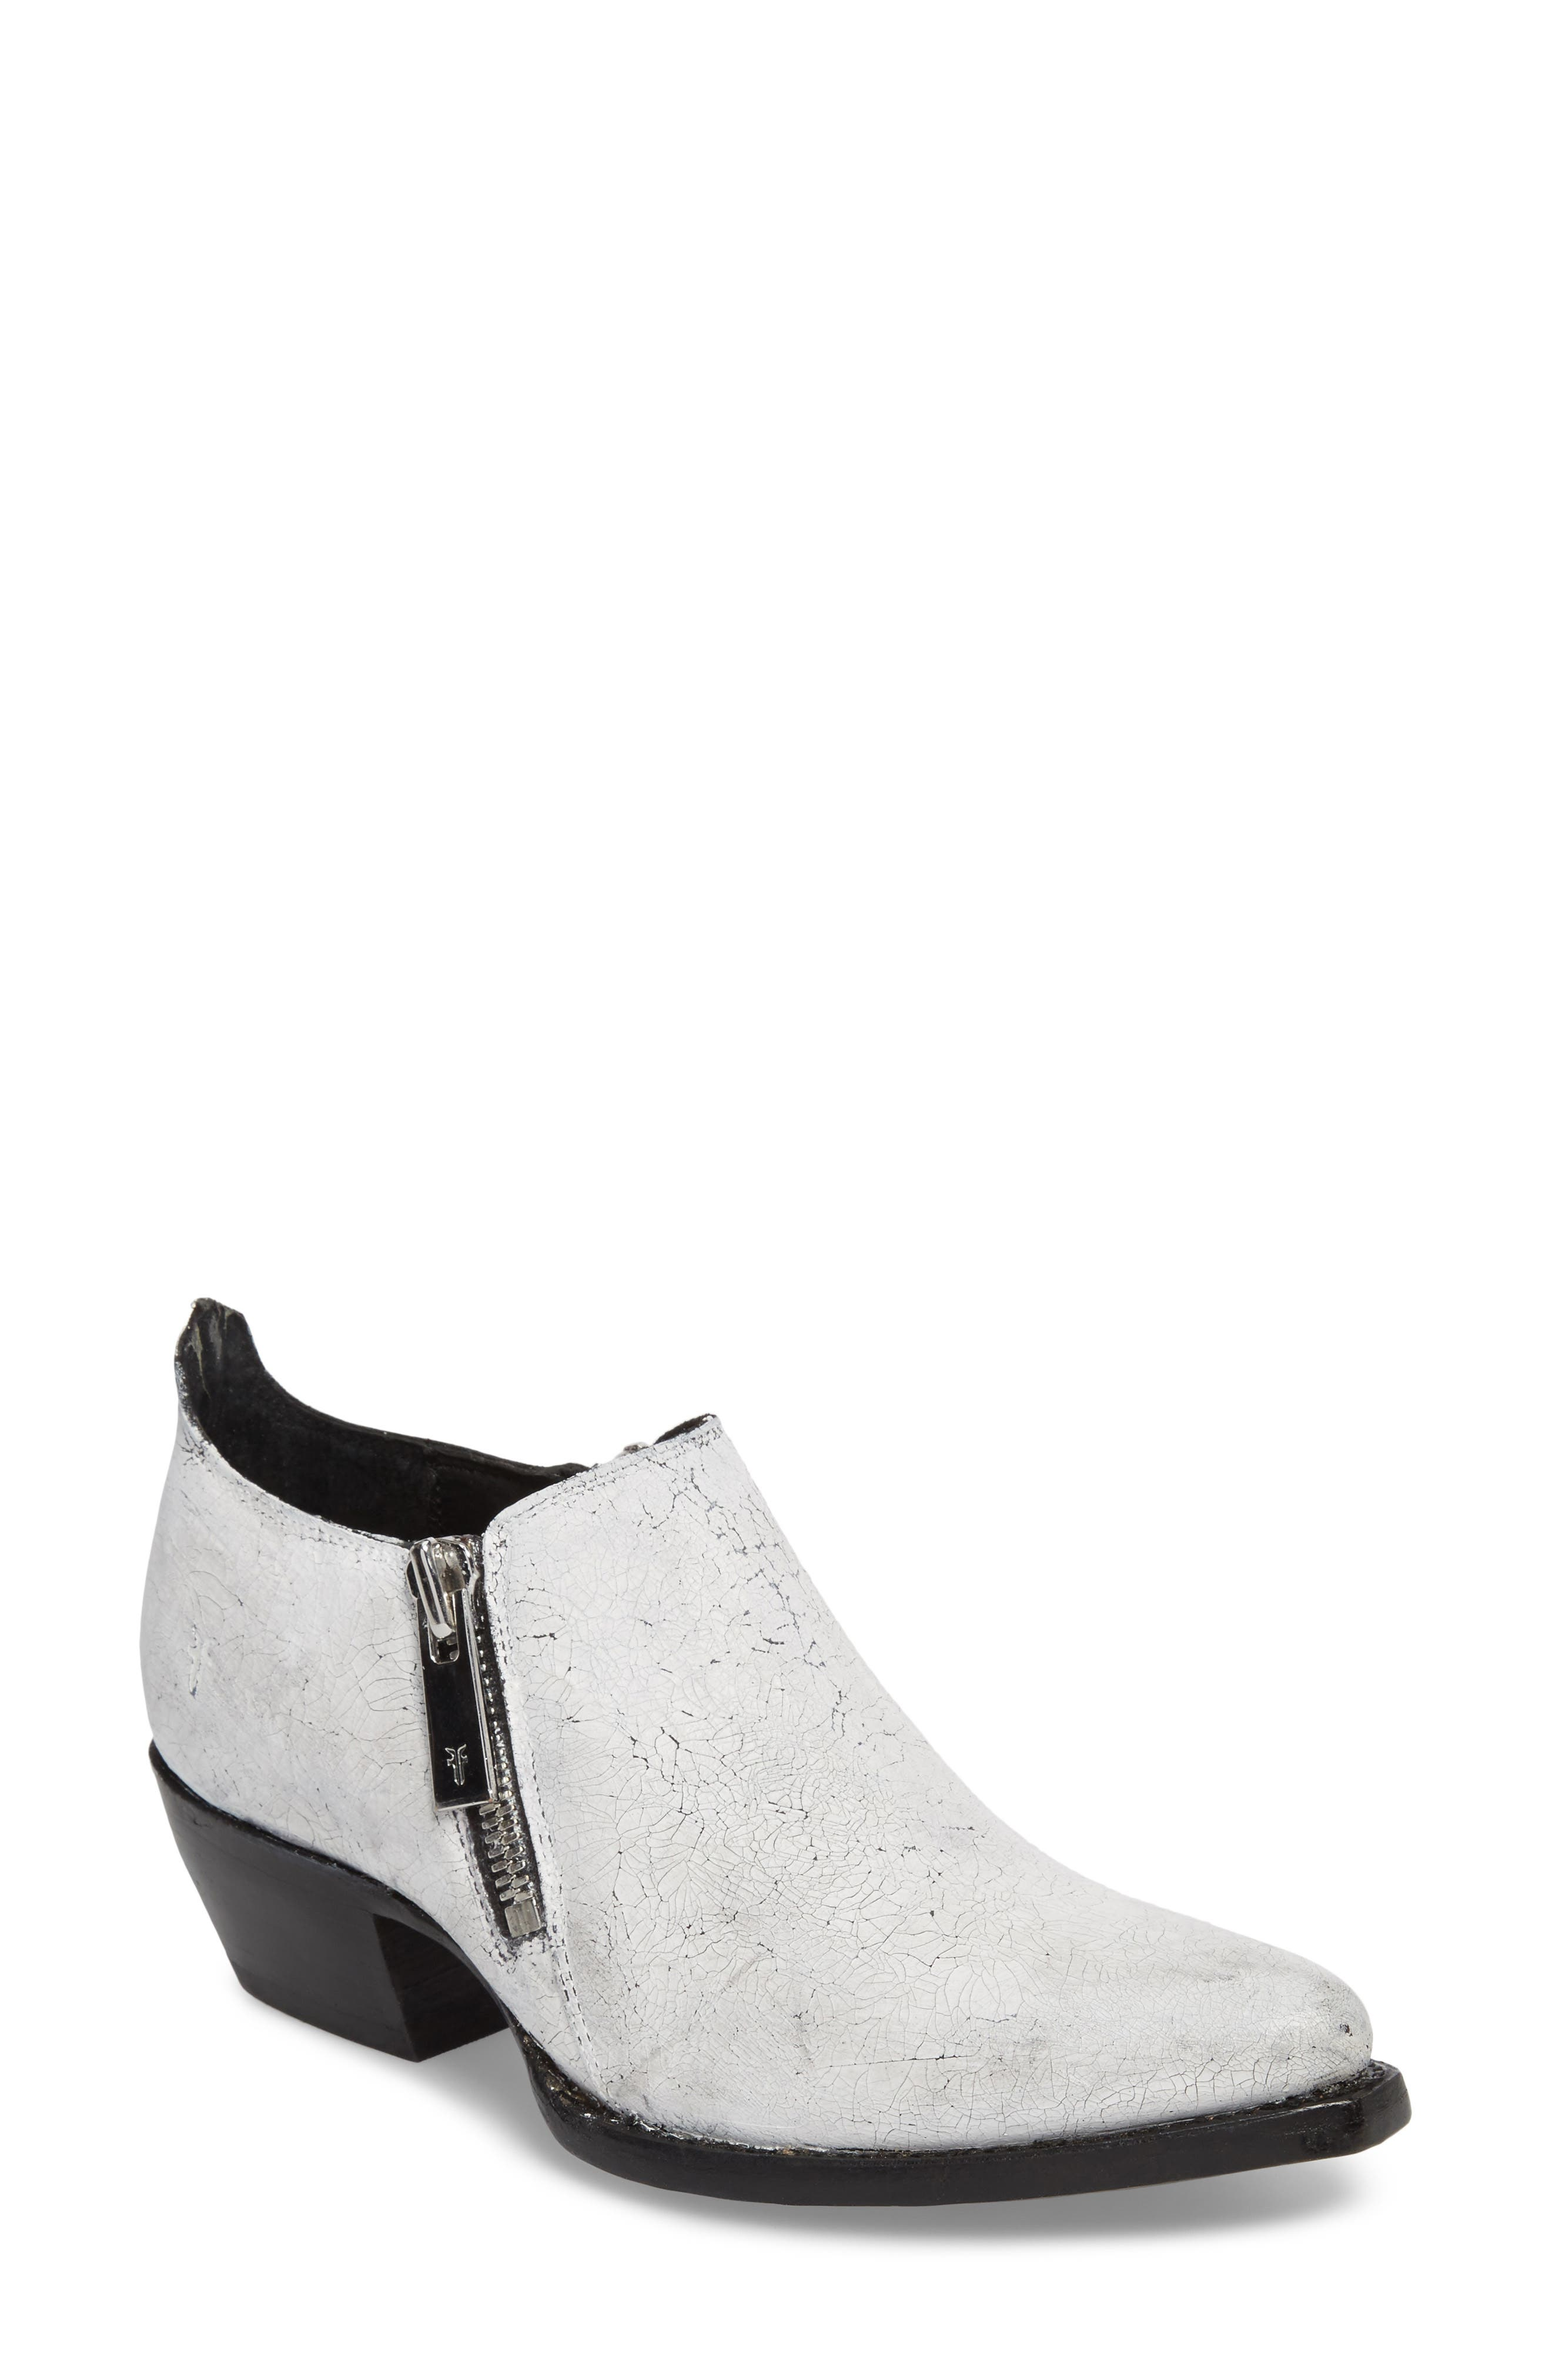 FRYE, Sacha Double Zip Bootie, Main thumbnail 1, color, WHITE